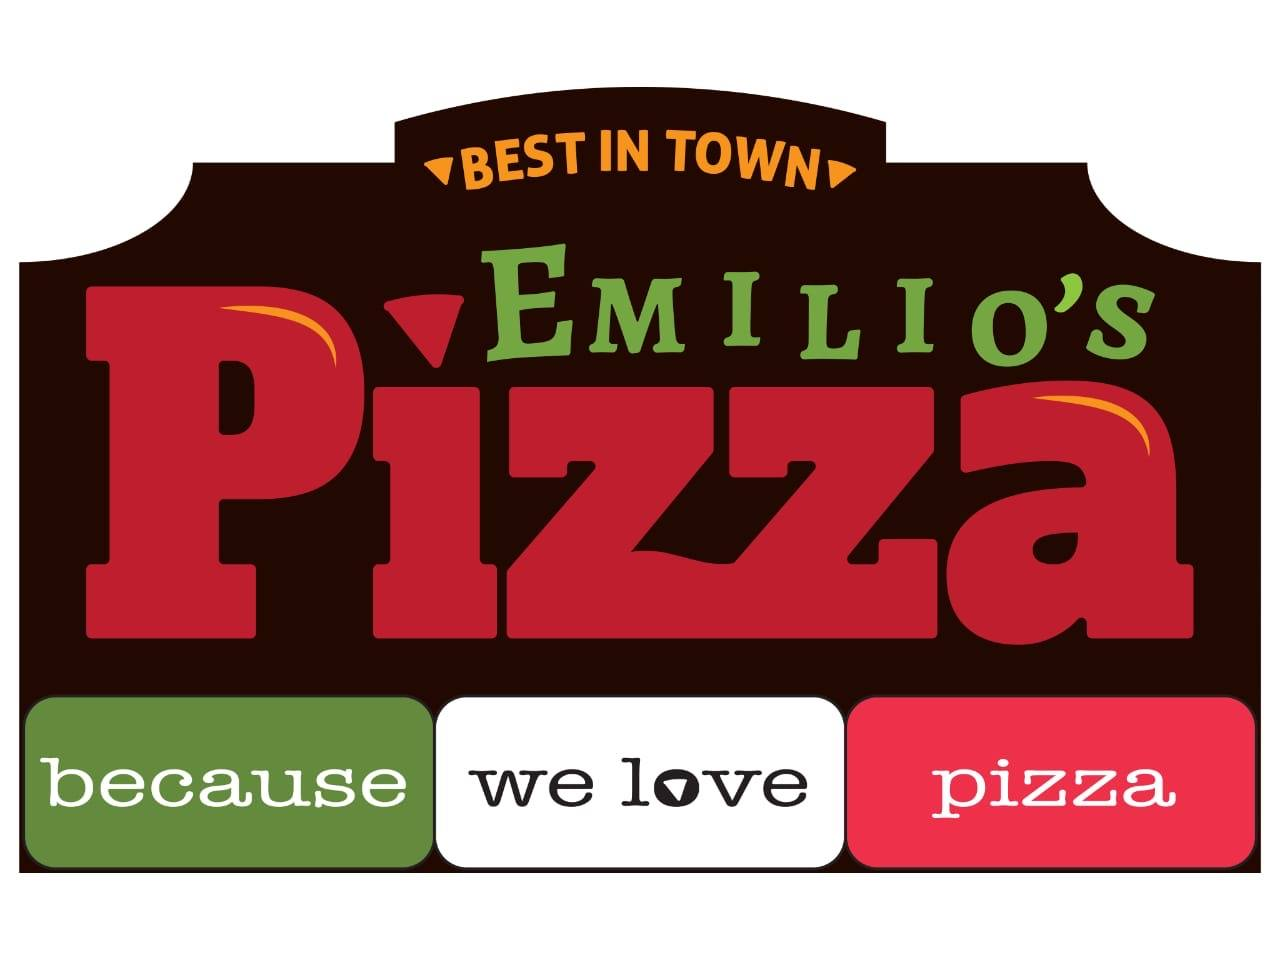 Emilios Pizza